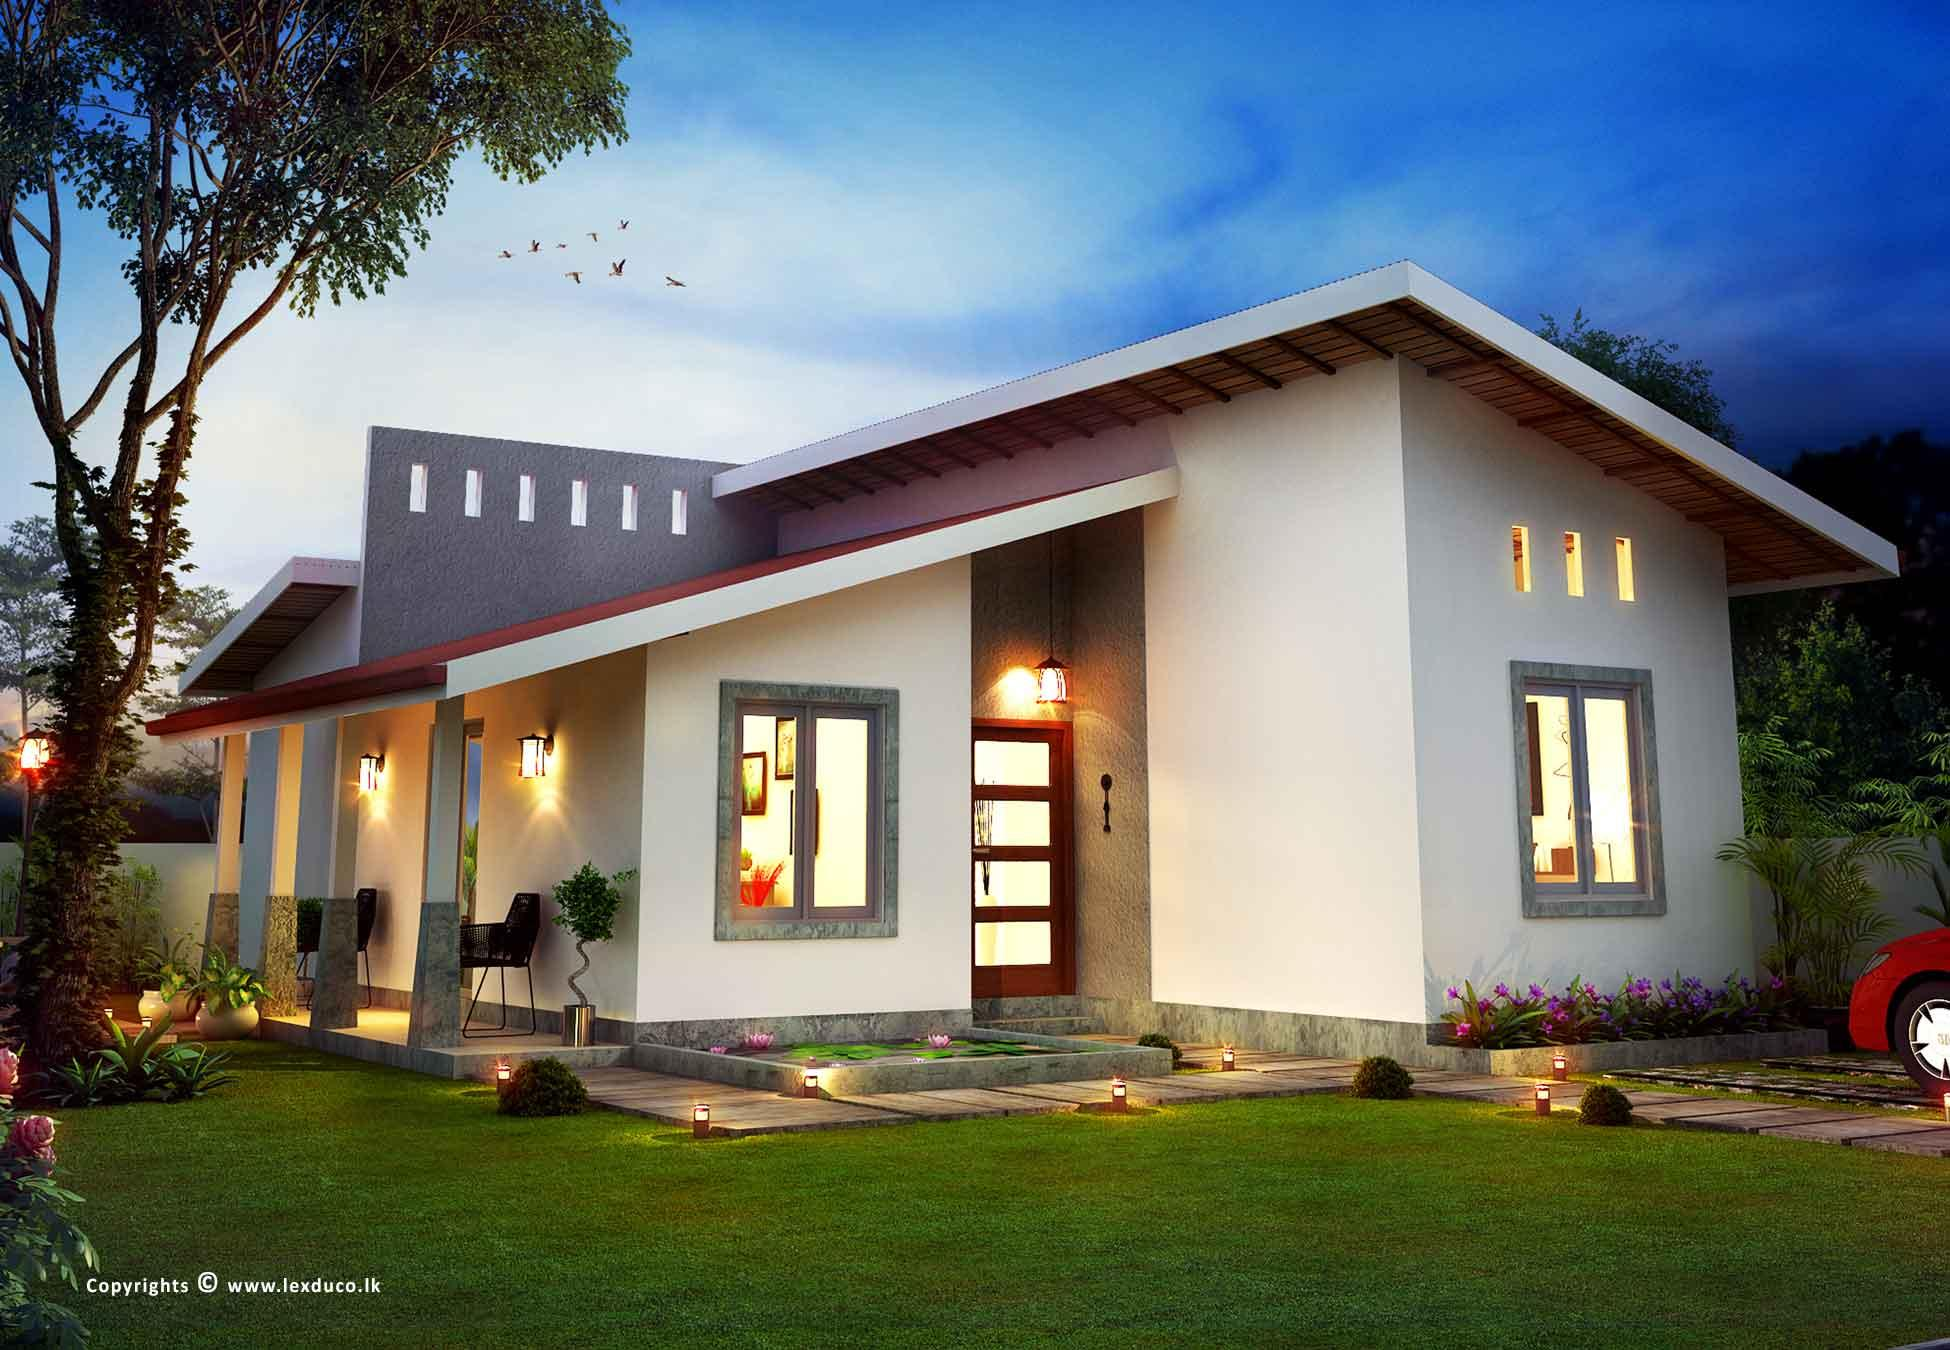 1 house builders in sri lanka 1 home house design for Home models and prices